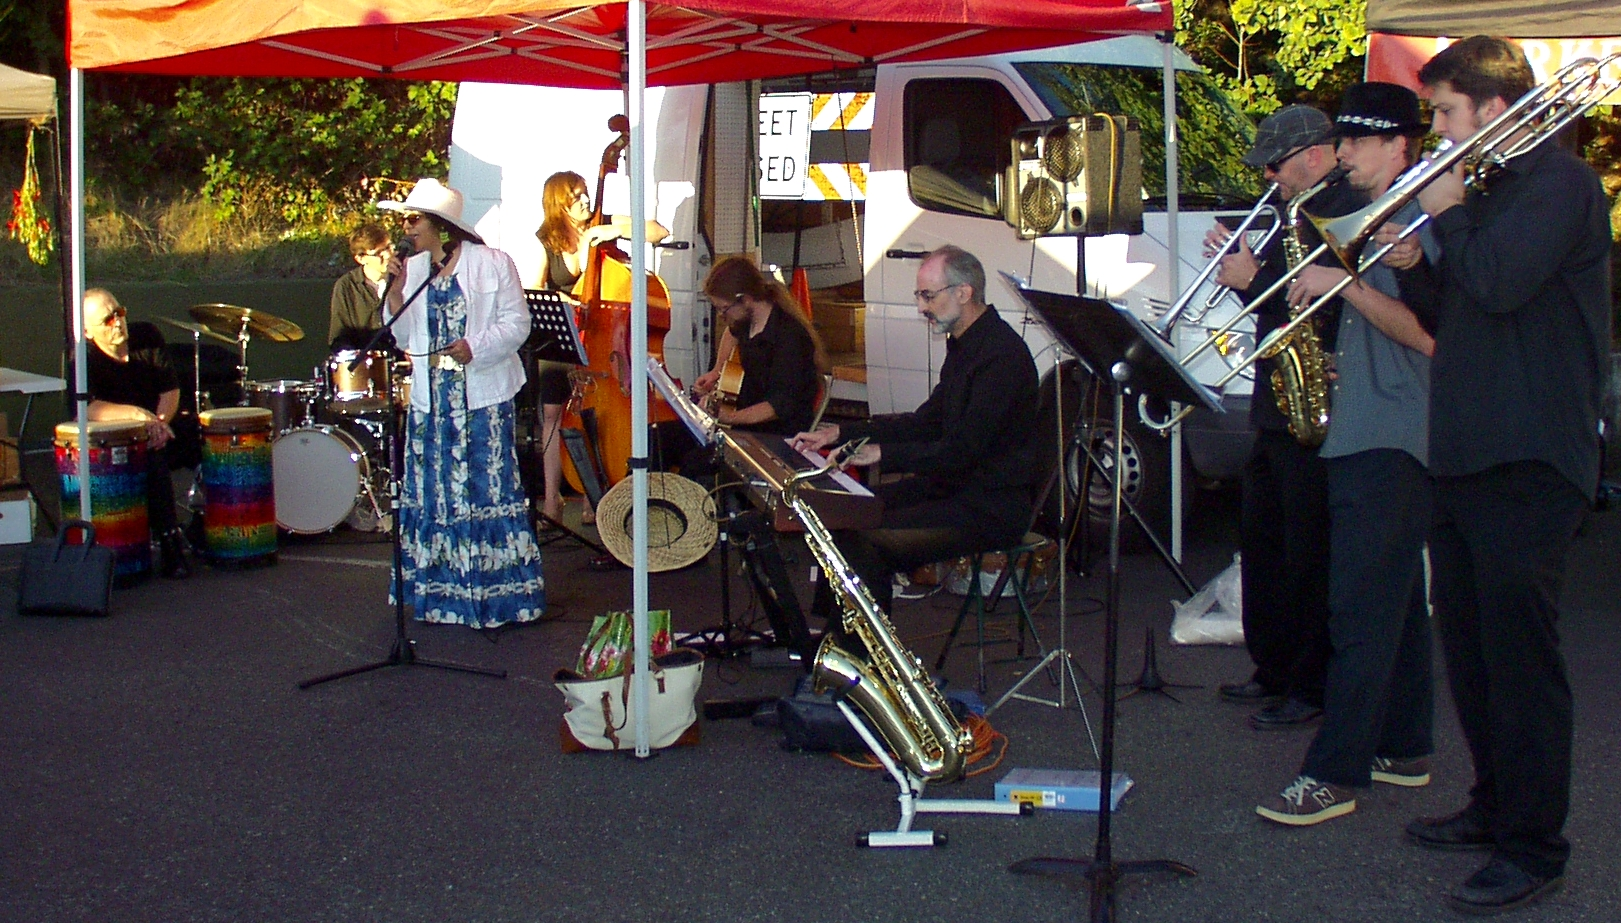 The Wallingford Big Band Orchestra performing at the Madrona Farmers Market last Friday. Photo copyright 2009 by Zachary D. Lyons.